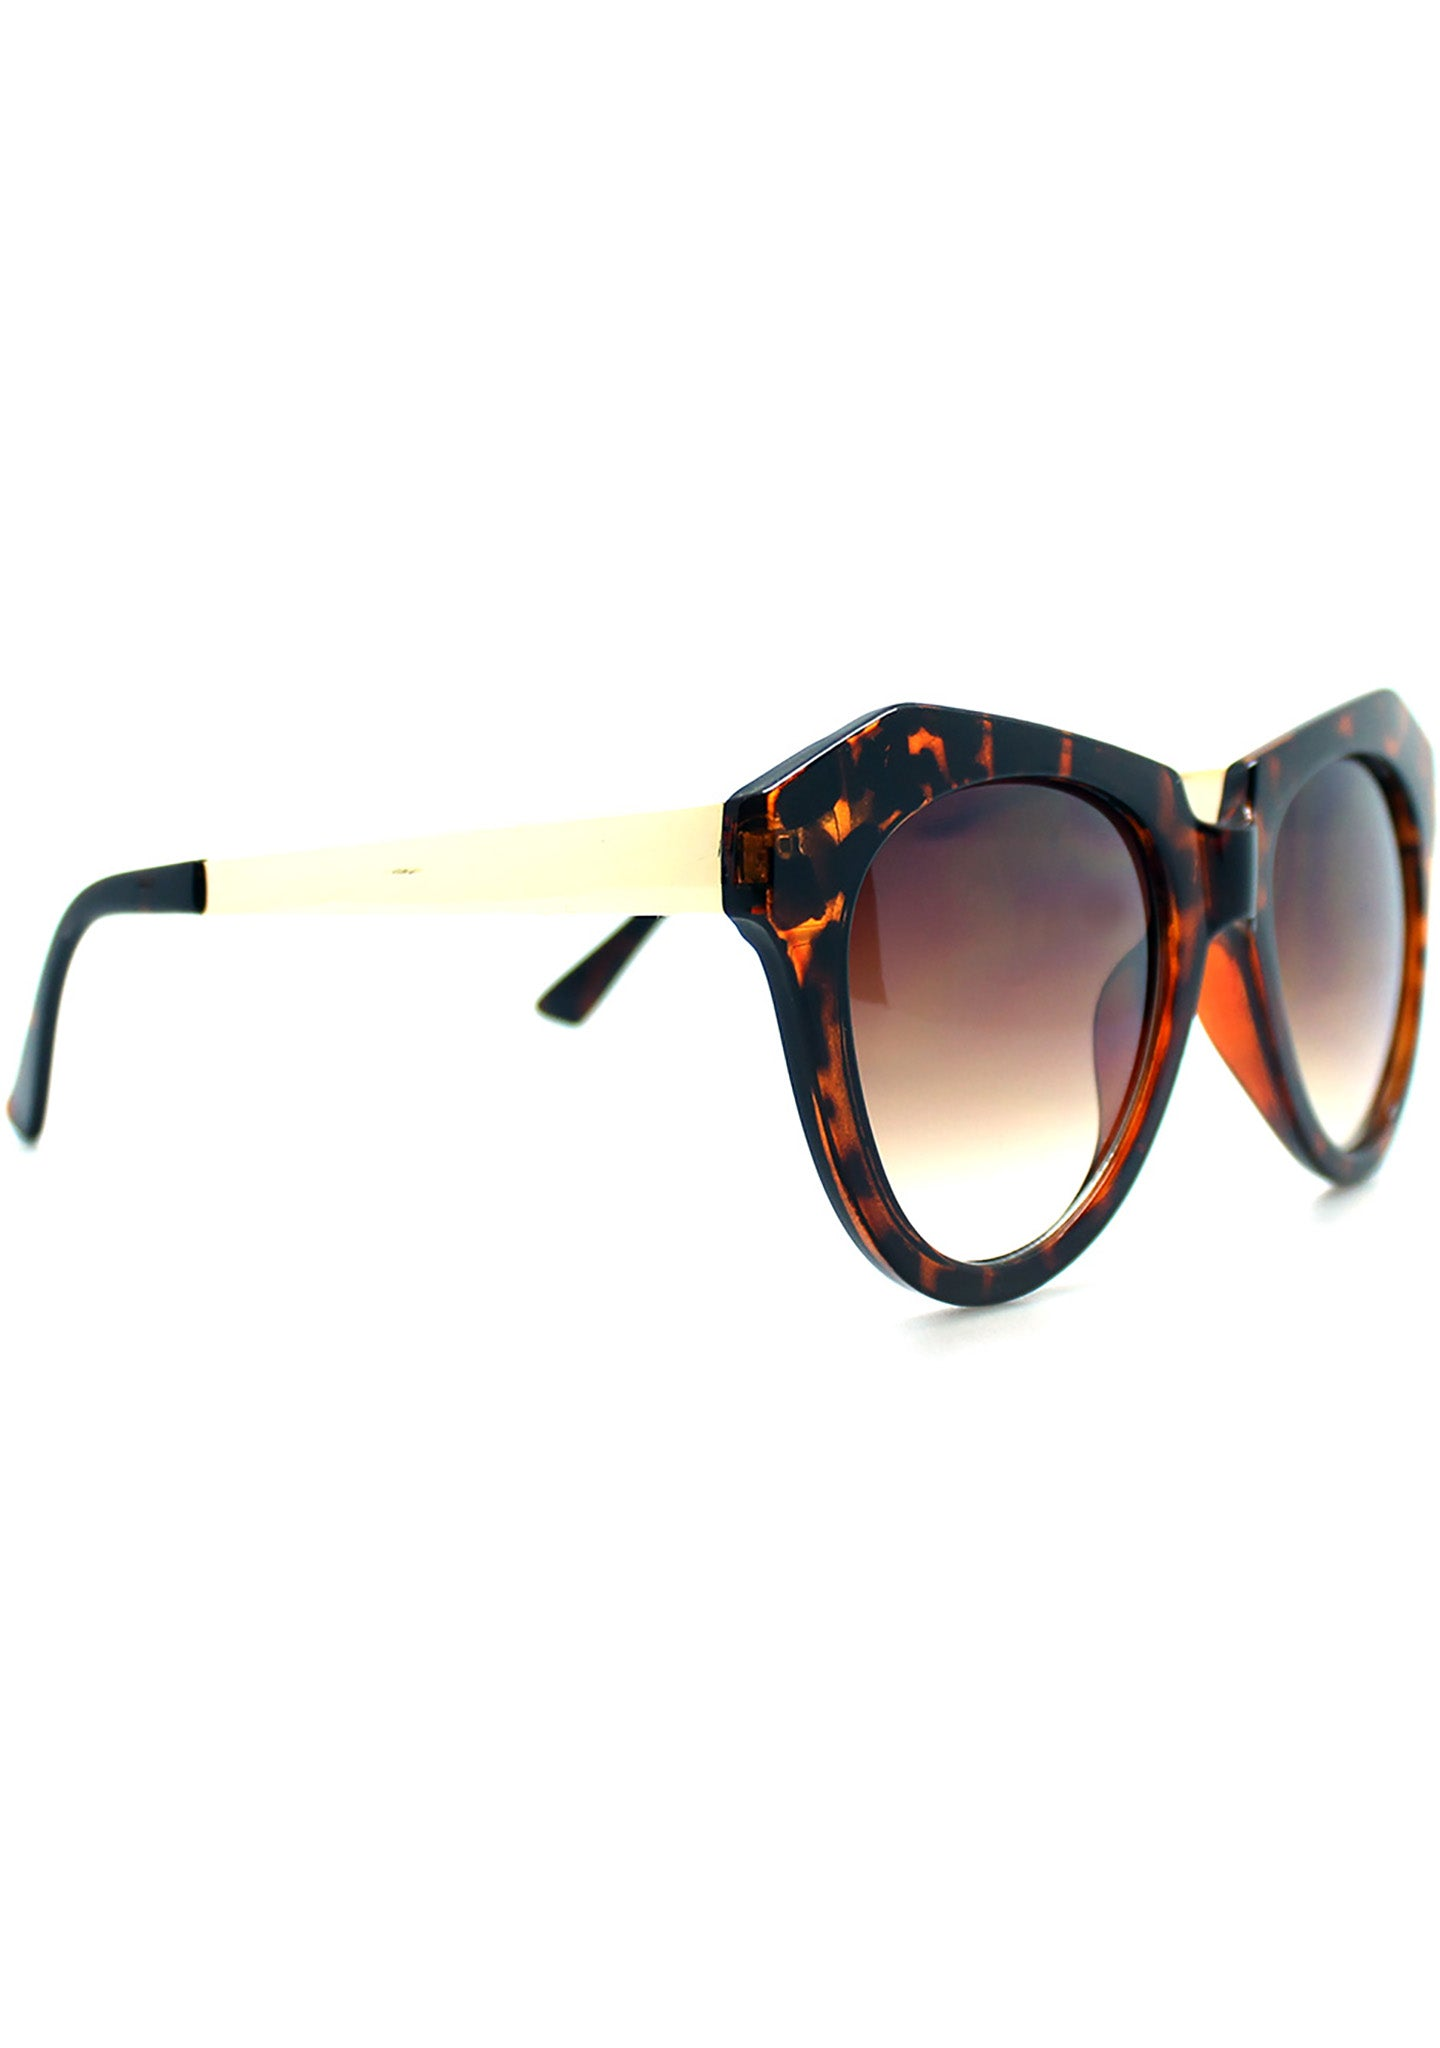 7 LUXE Prowler Sunglasses